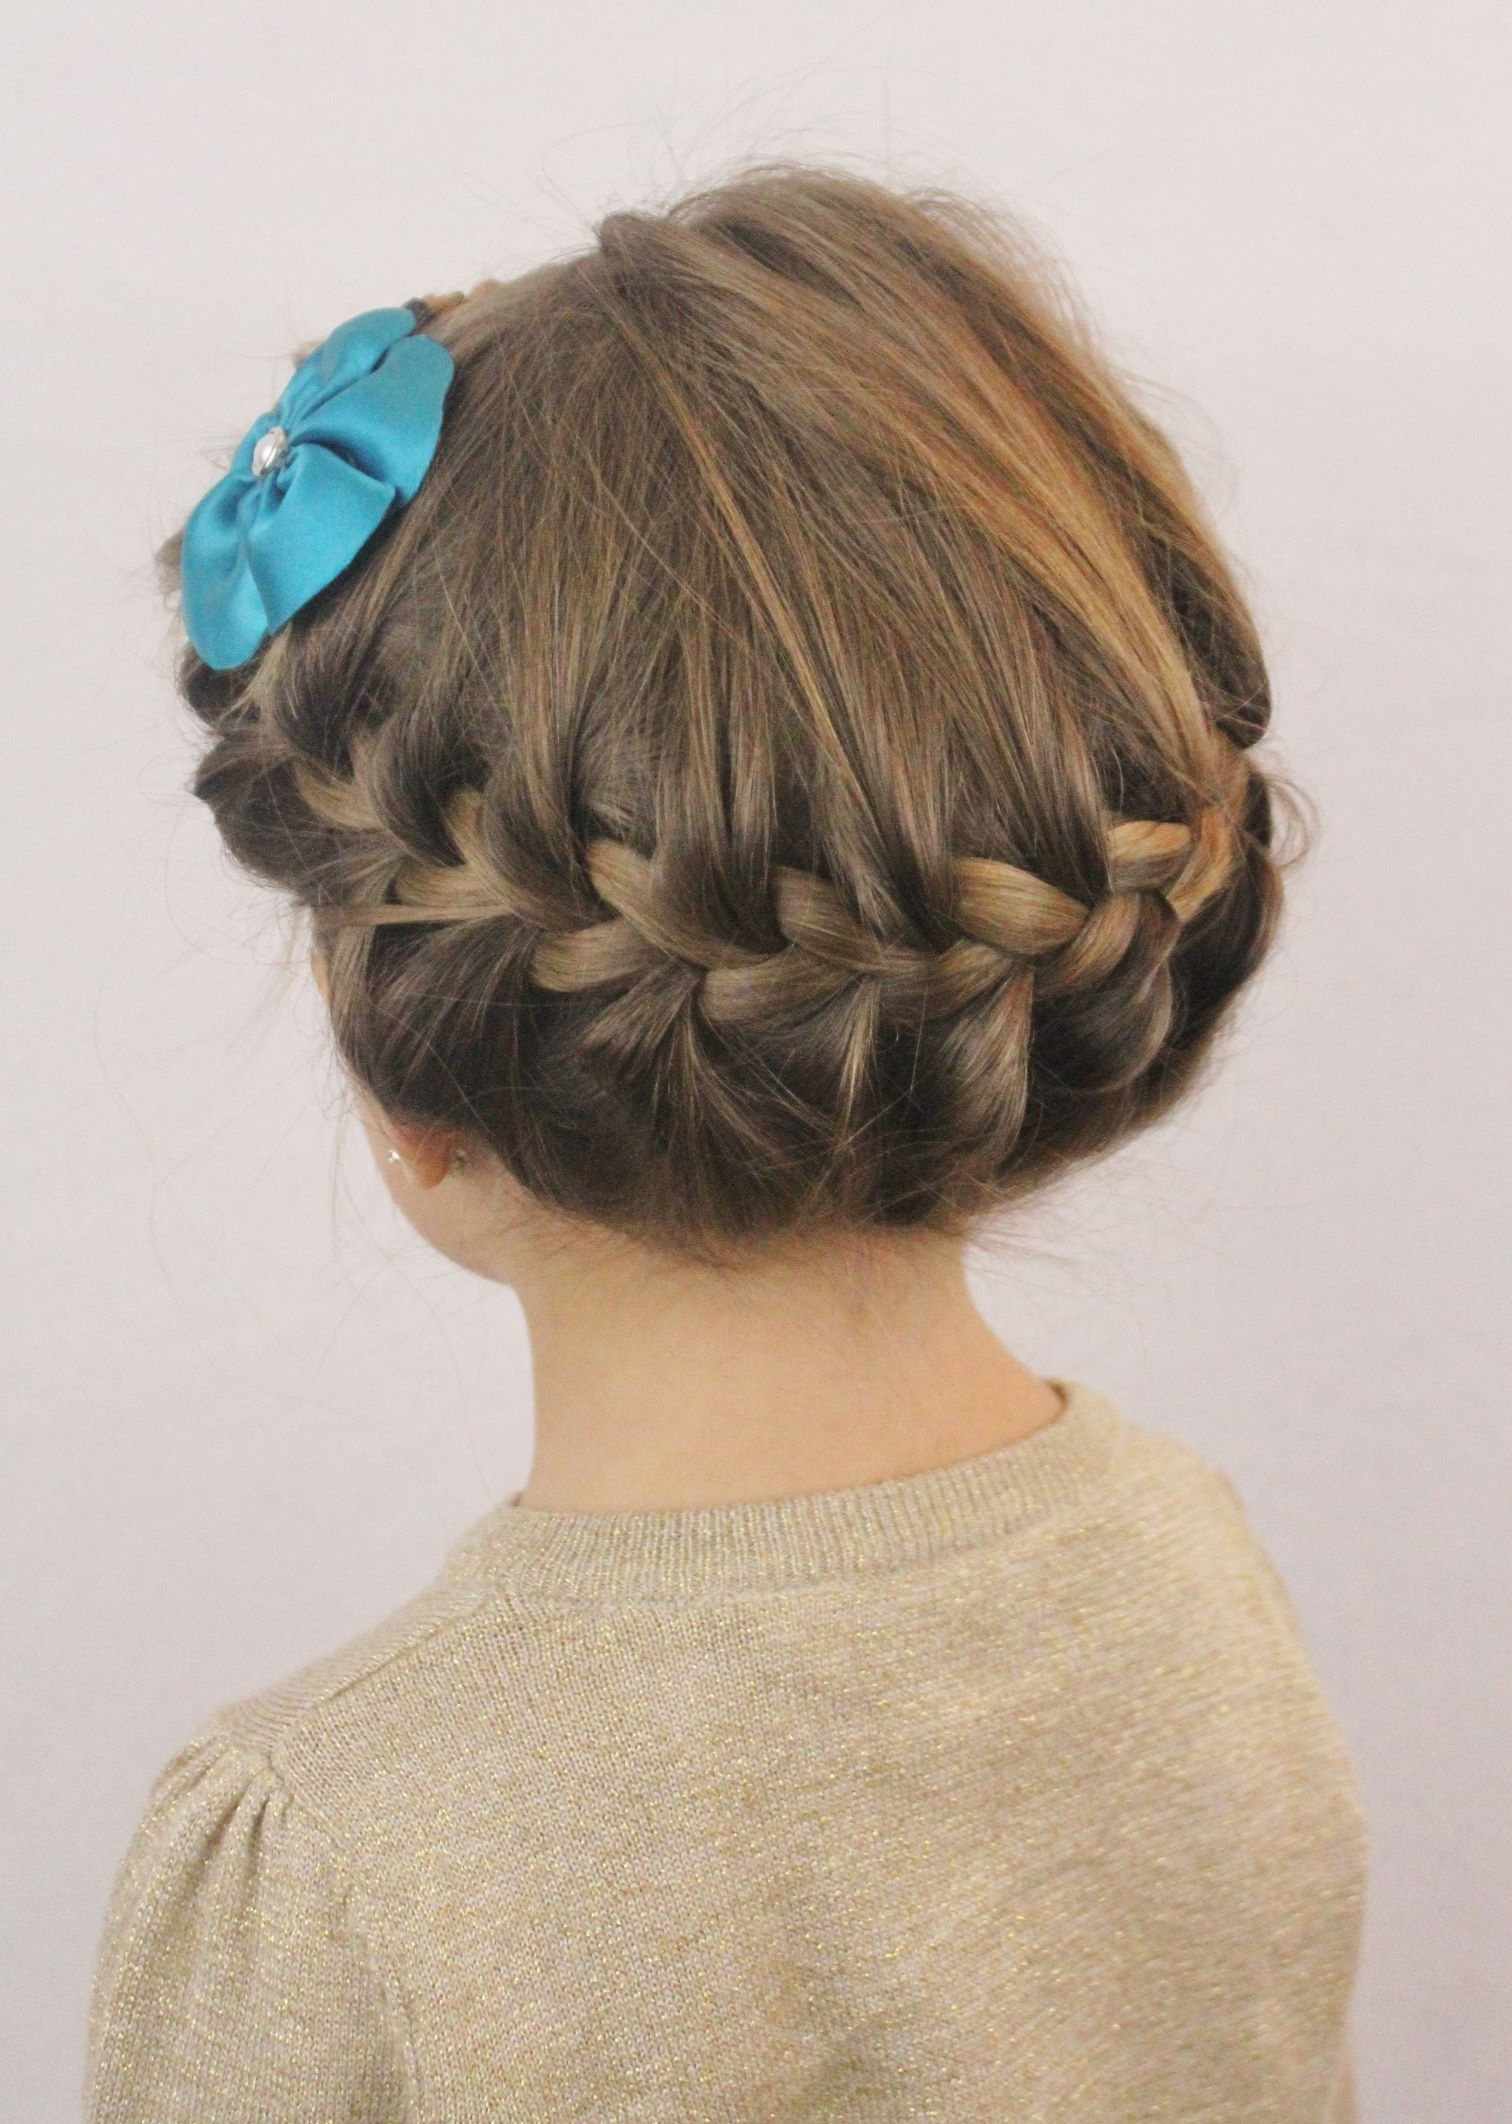 Awesome Easy Princess Hairstyles Harvardsolcom Image Of For Kids With Easy Updo Hairstyles For Kids (View 3 of 15)